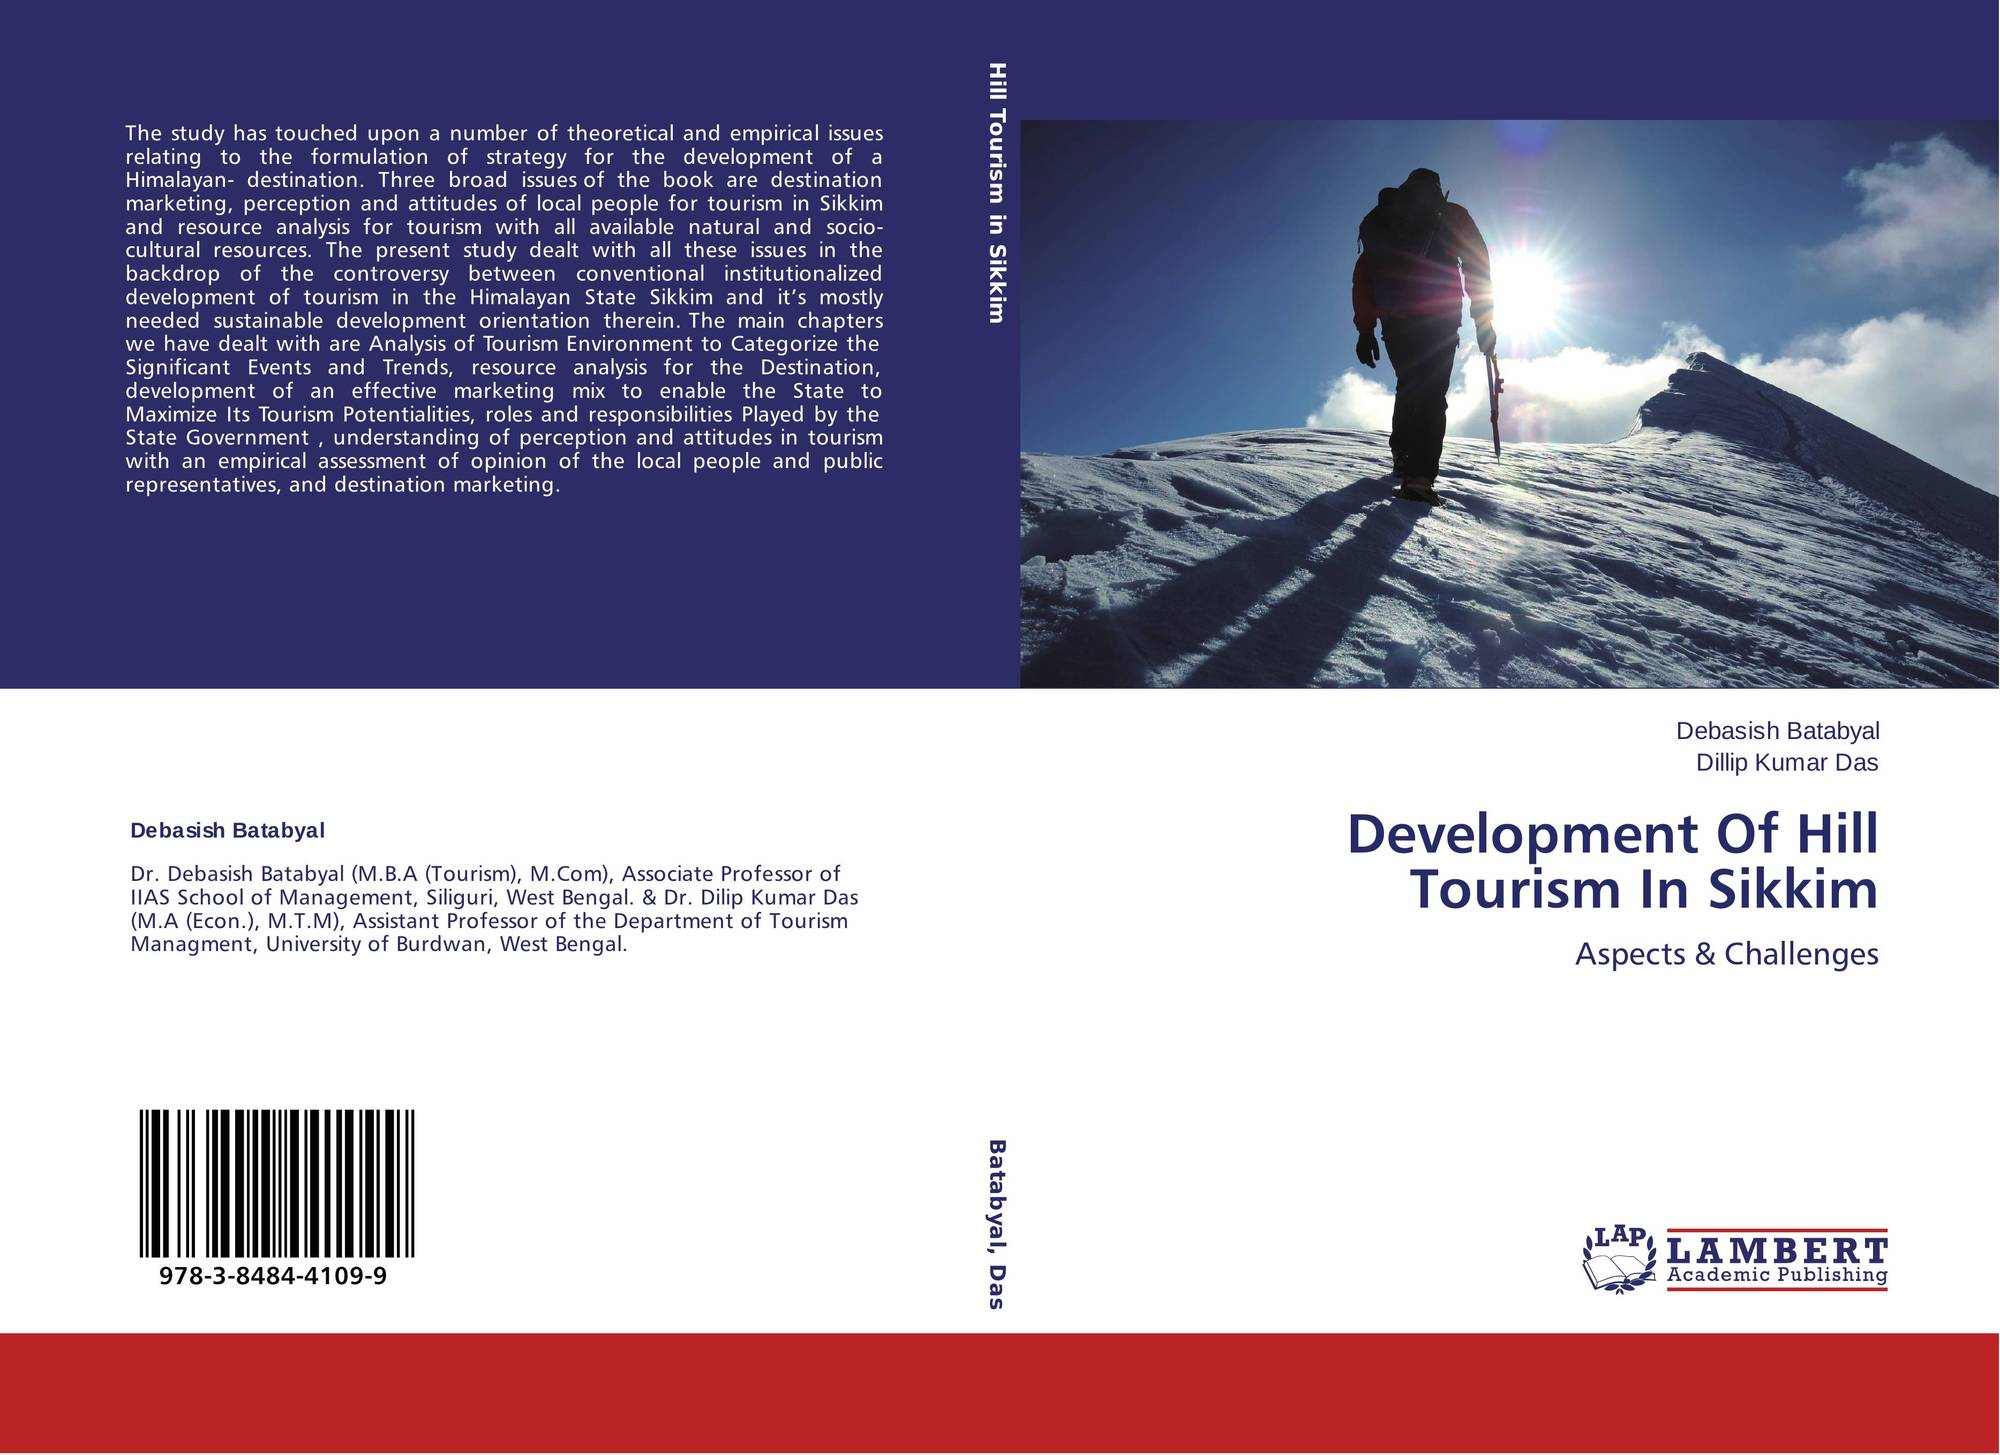 tourism development in sikkim essay In other words, tourism offers imperative contributions for development in the country, as tourism is an element of development strategy (ozbey, 2002) tourism industry's extensive involvements to national economy are a known reality.